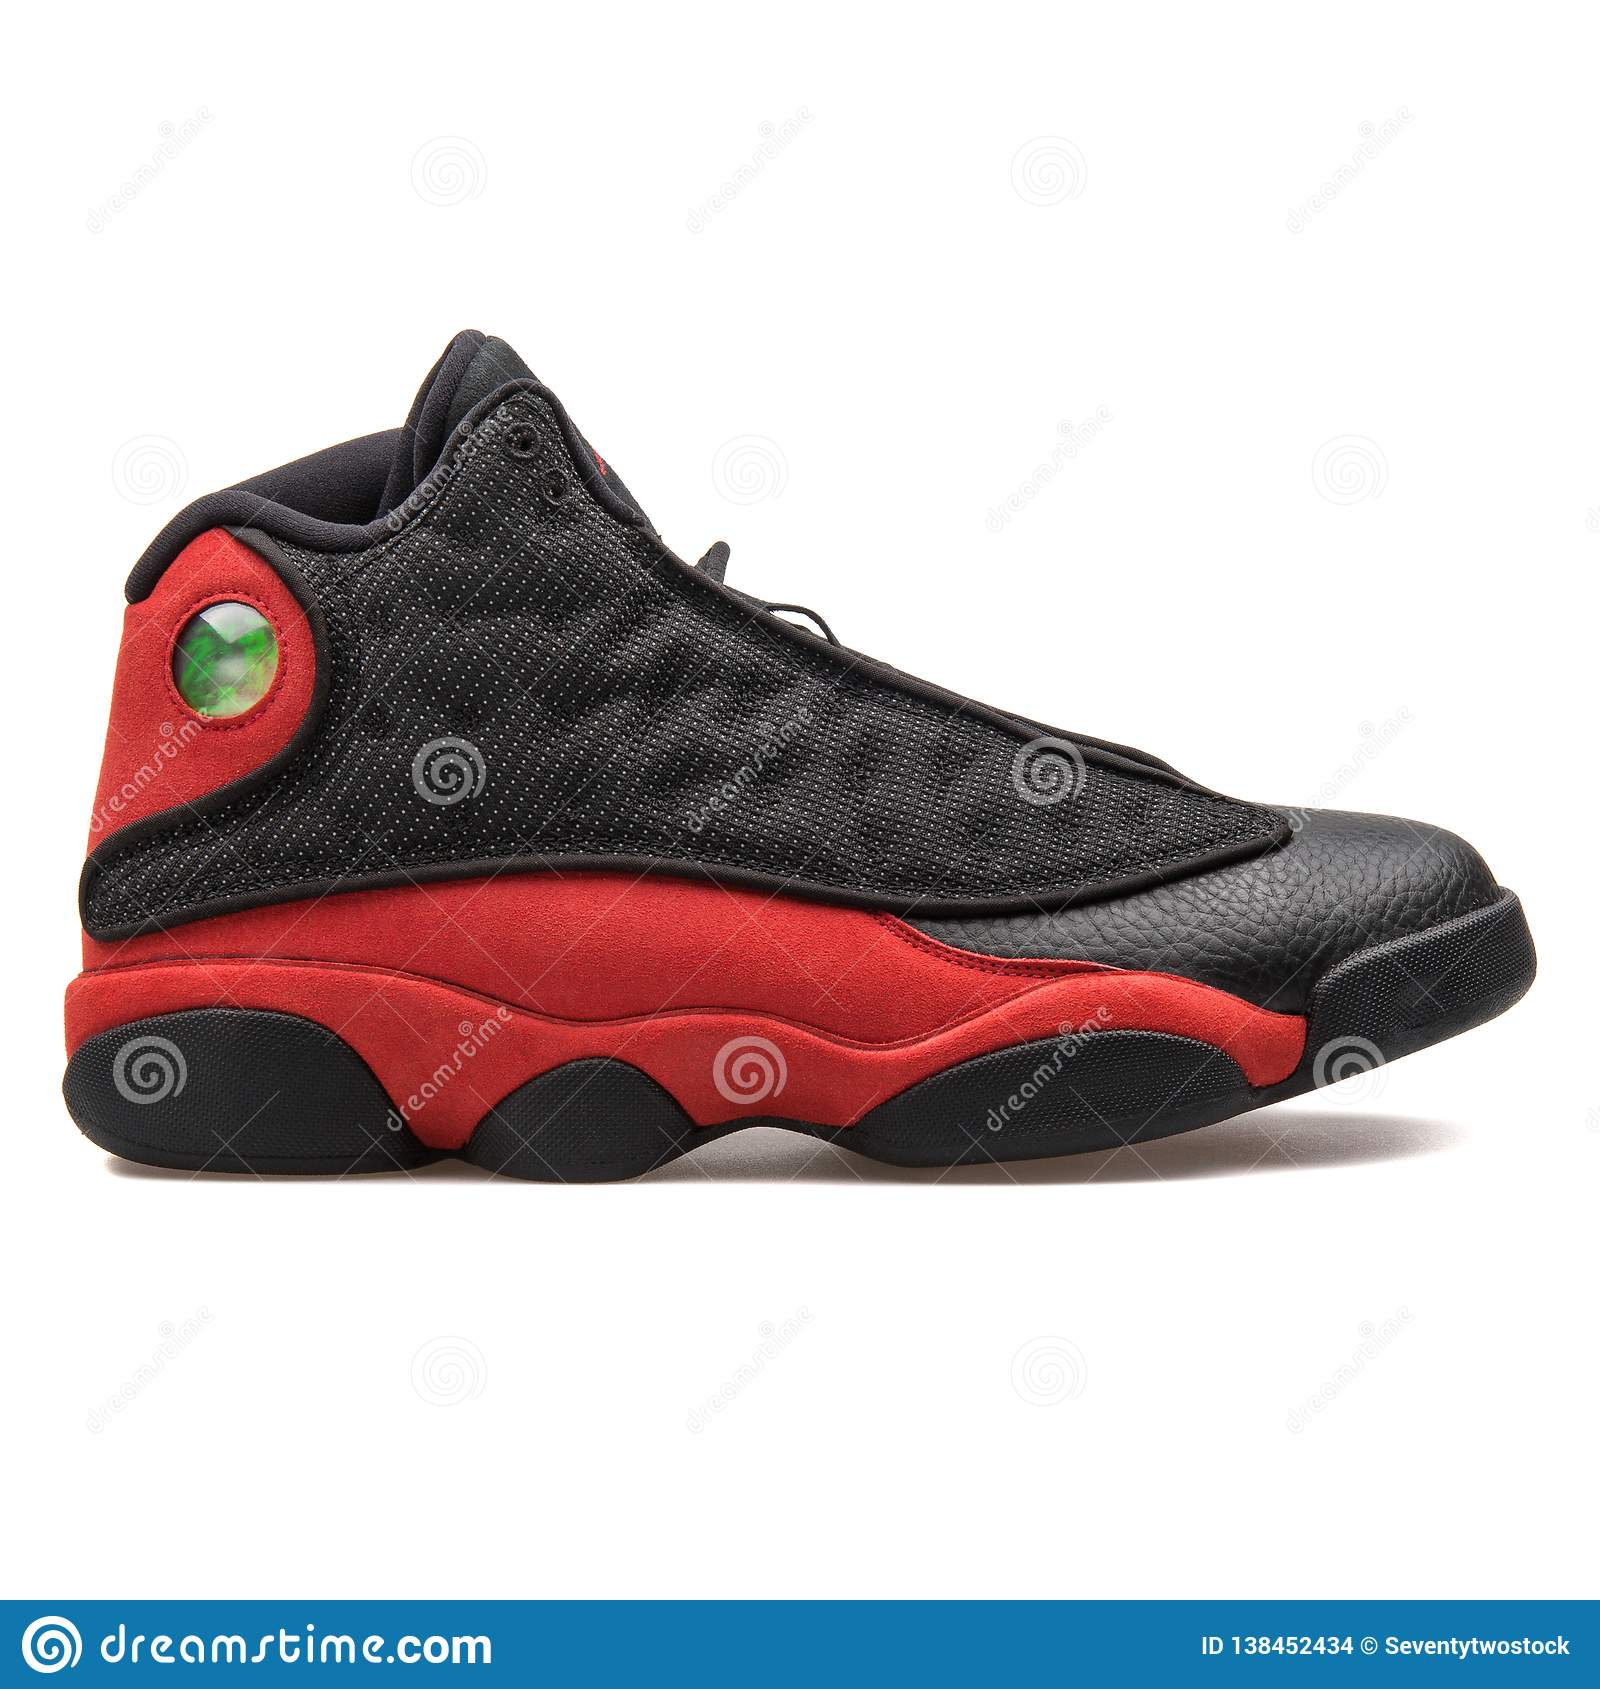 bd4c0aa9 VIENNA, AUSTRIA - AUGUST 7, 2017: Nike Air Jordan 13 Retro black and red  sneaker on white background. More similar stock images